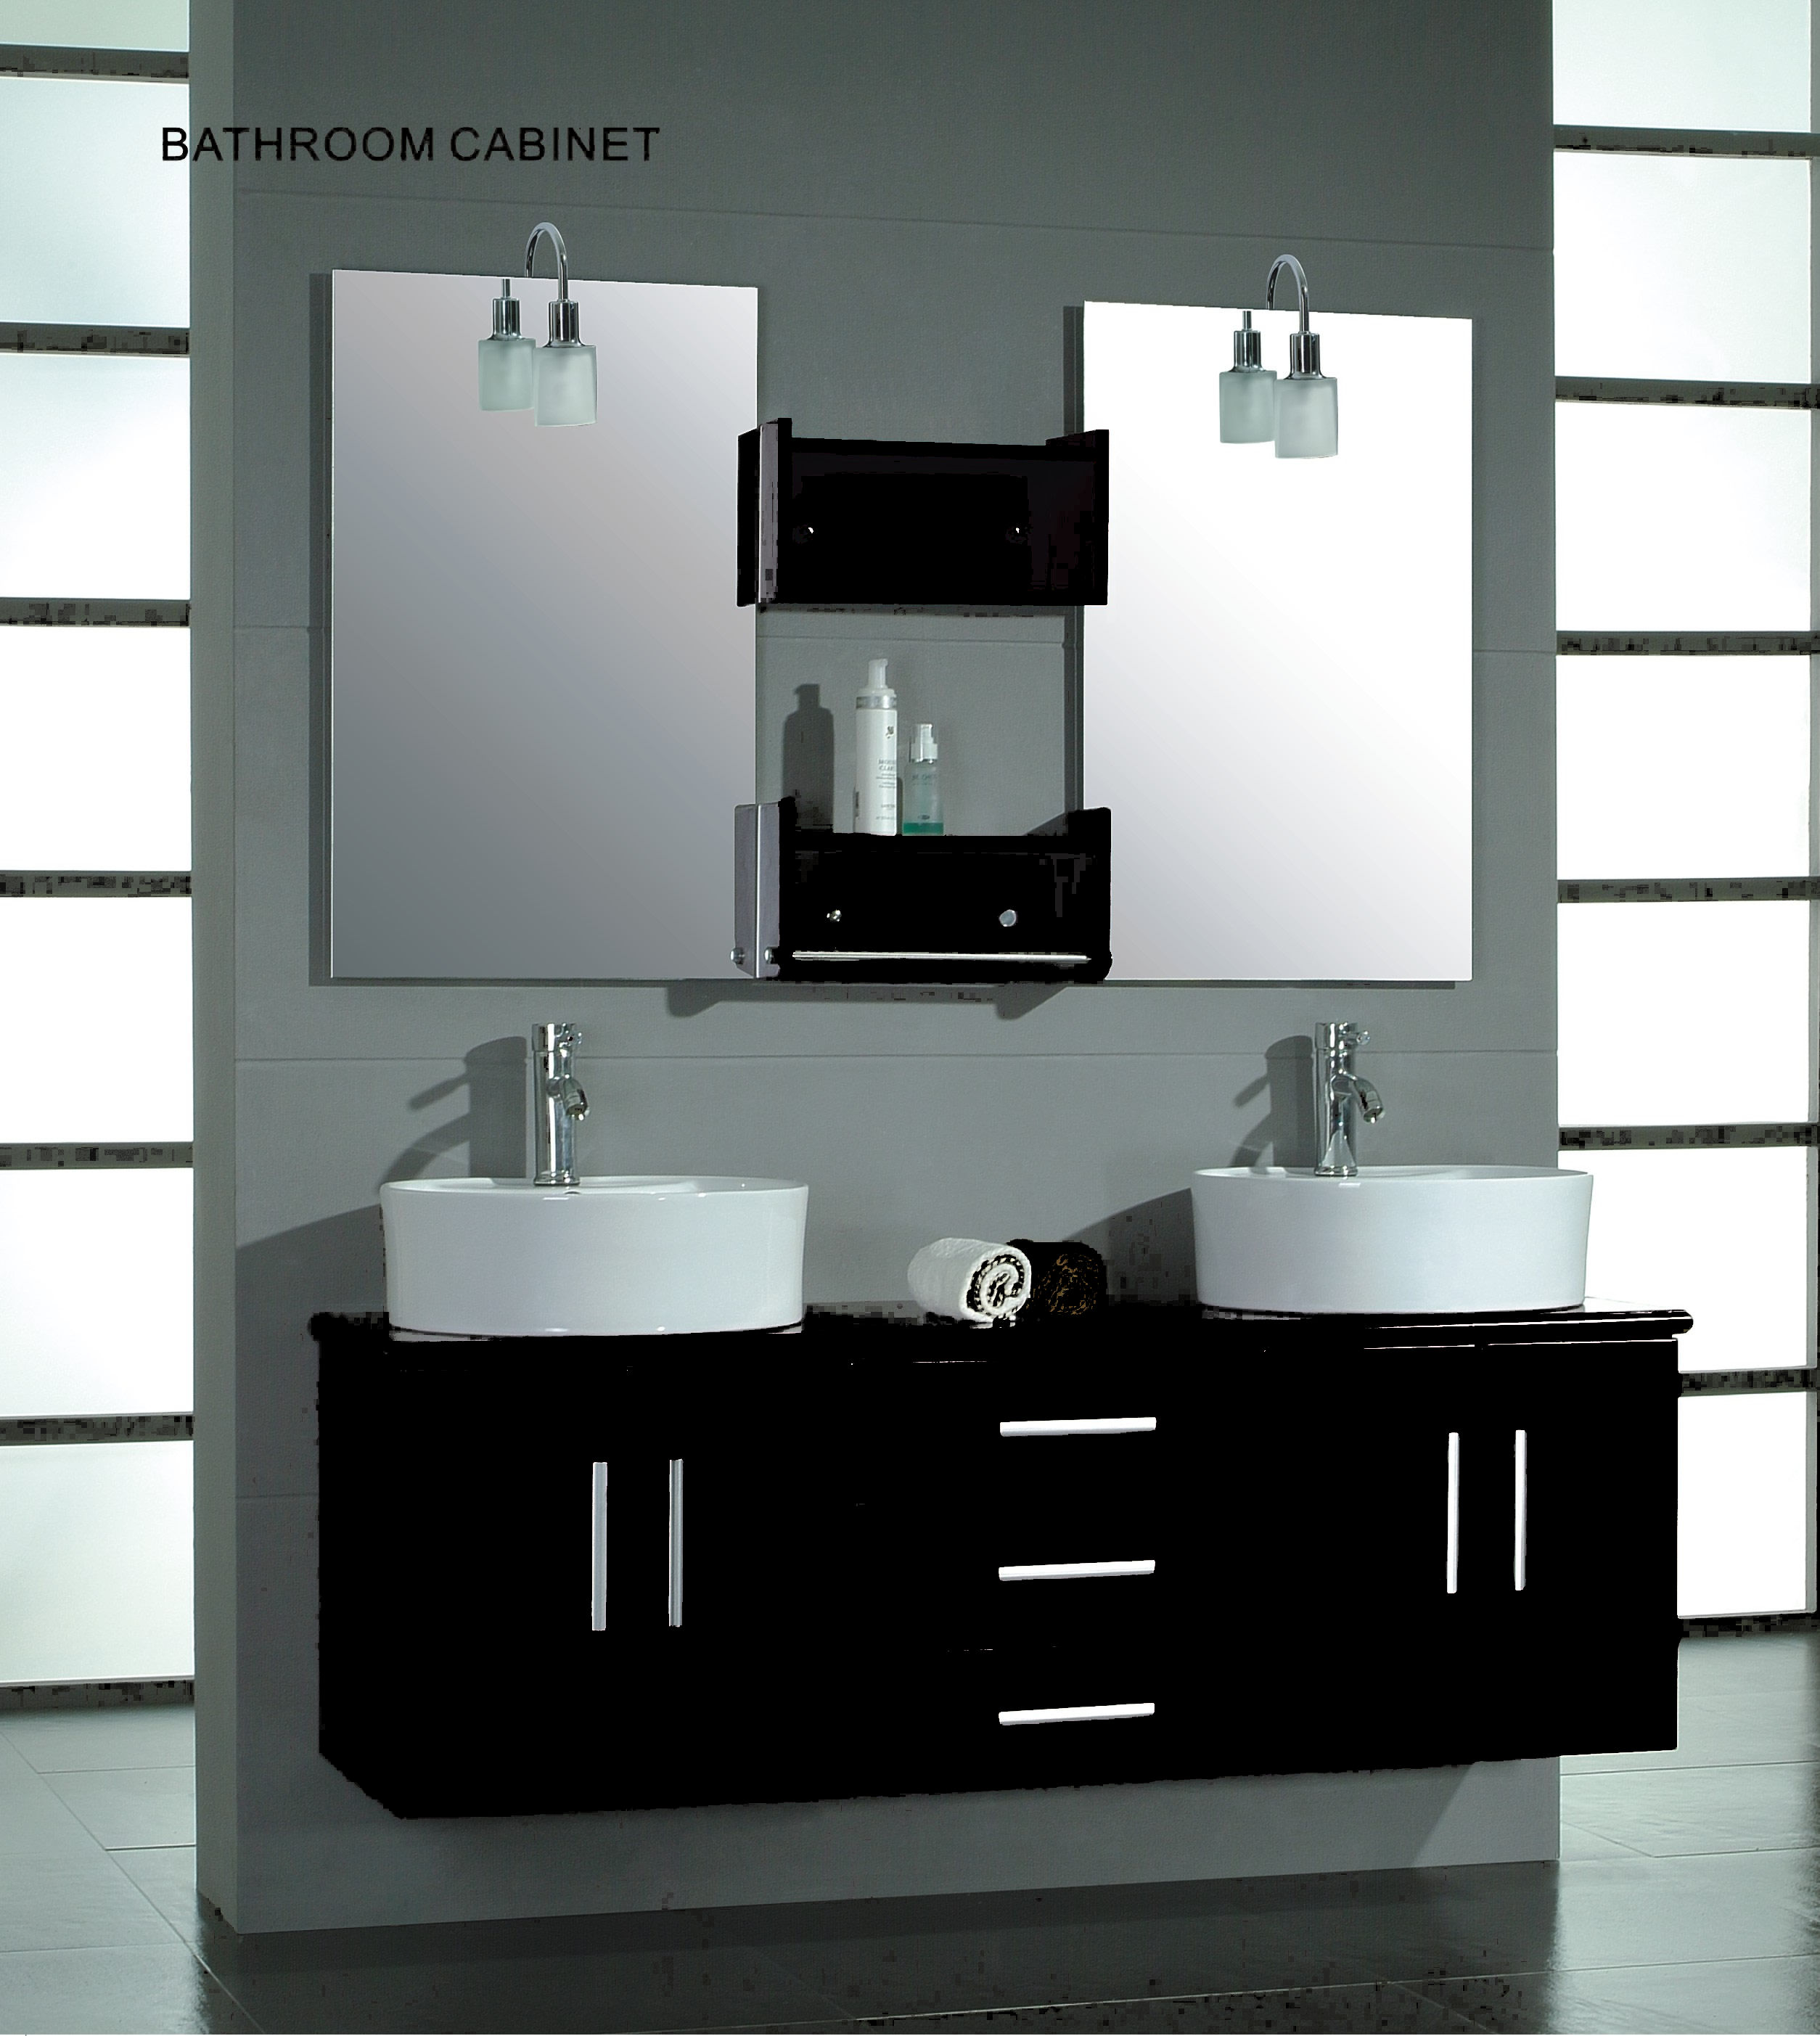 of cabinets beautiful best small cabinet wall corner bathrooms bathroom mount pretty on storage hung